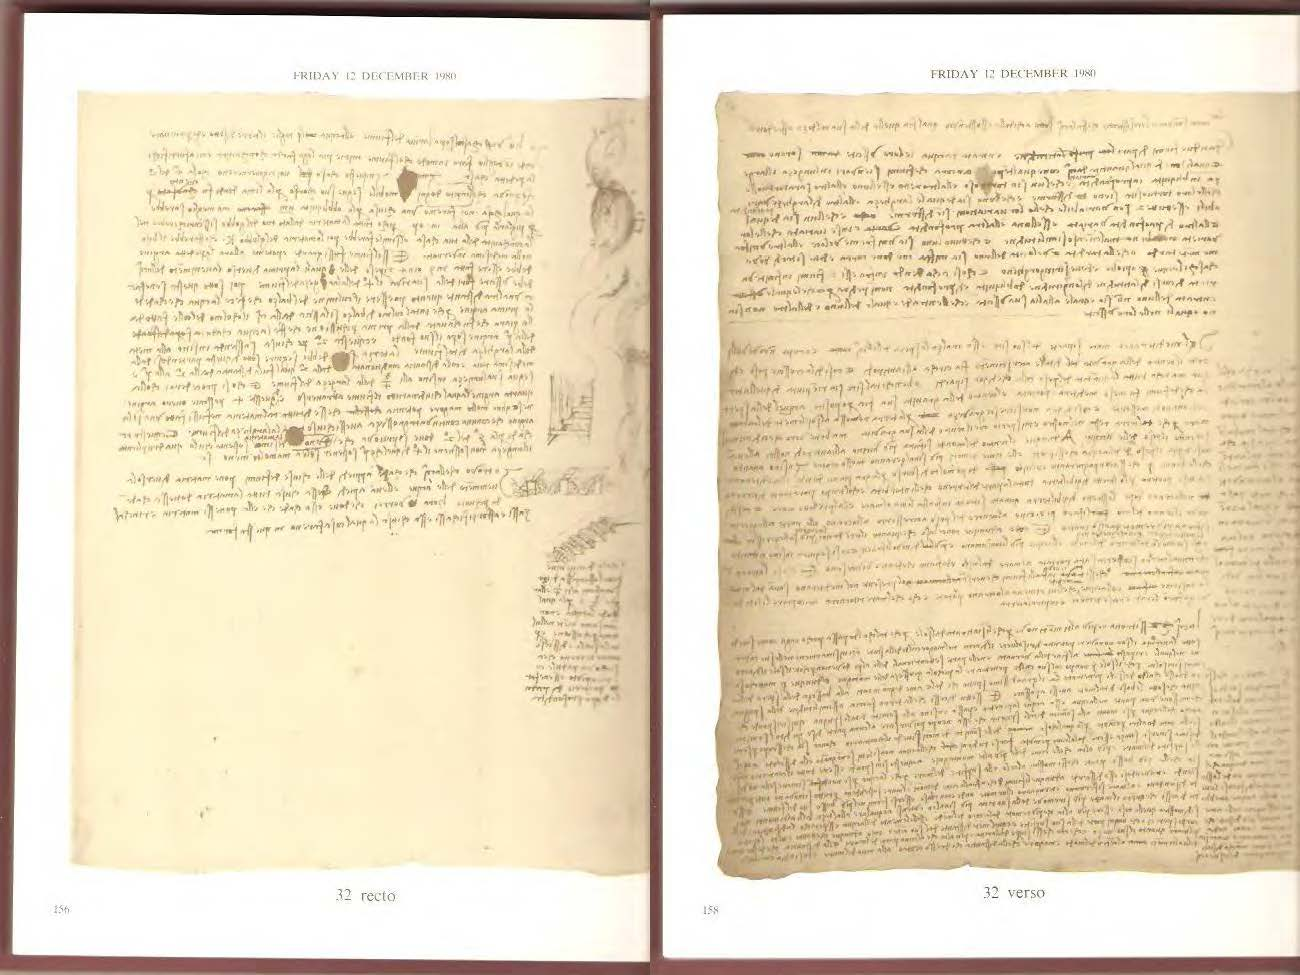 Codex_Leicester_Page_32_Image_0001.jpg